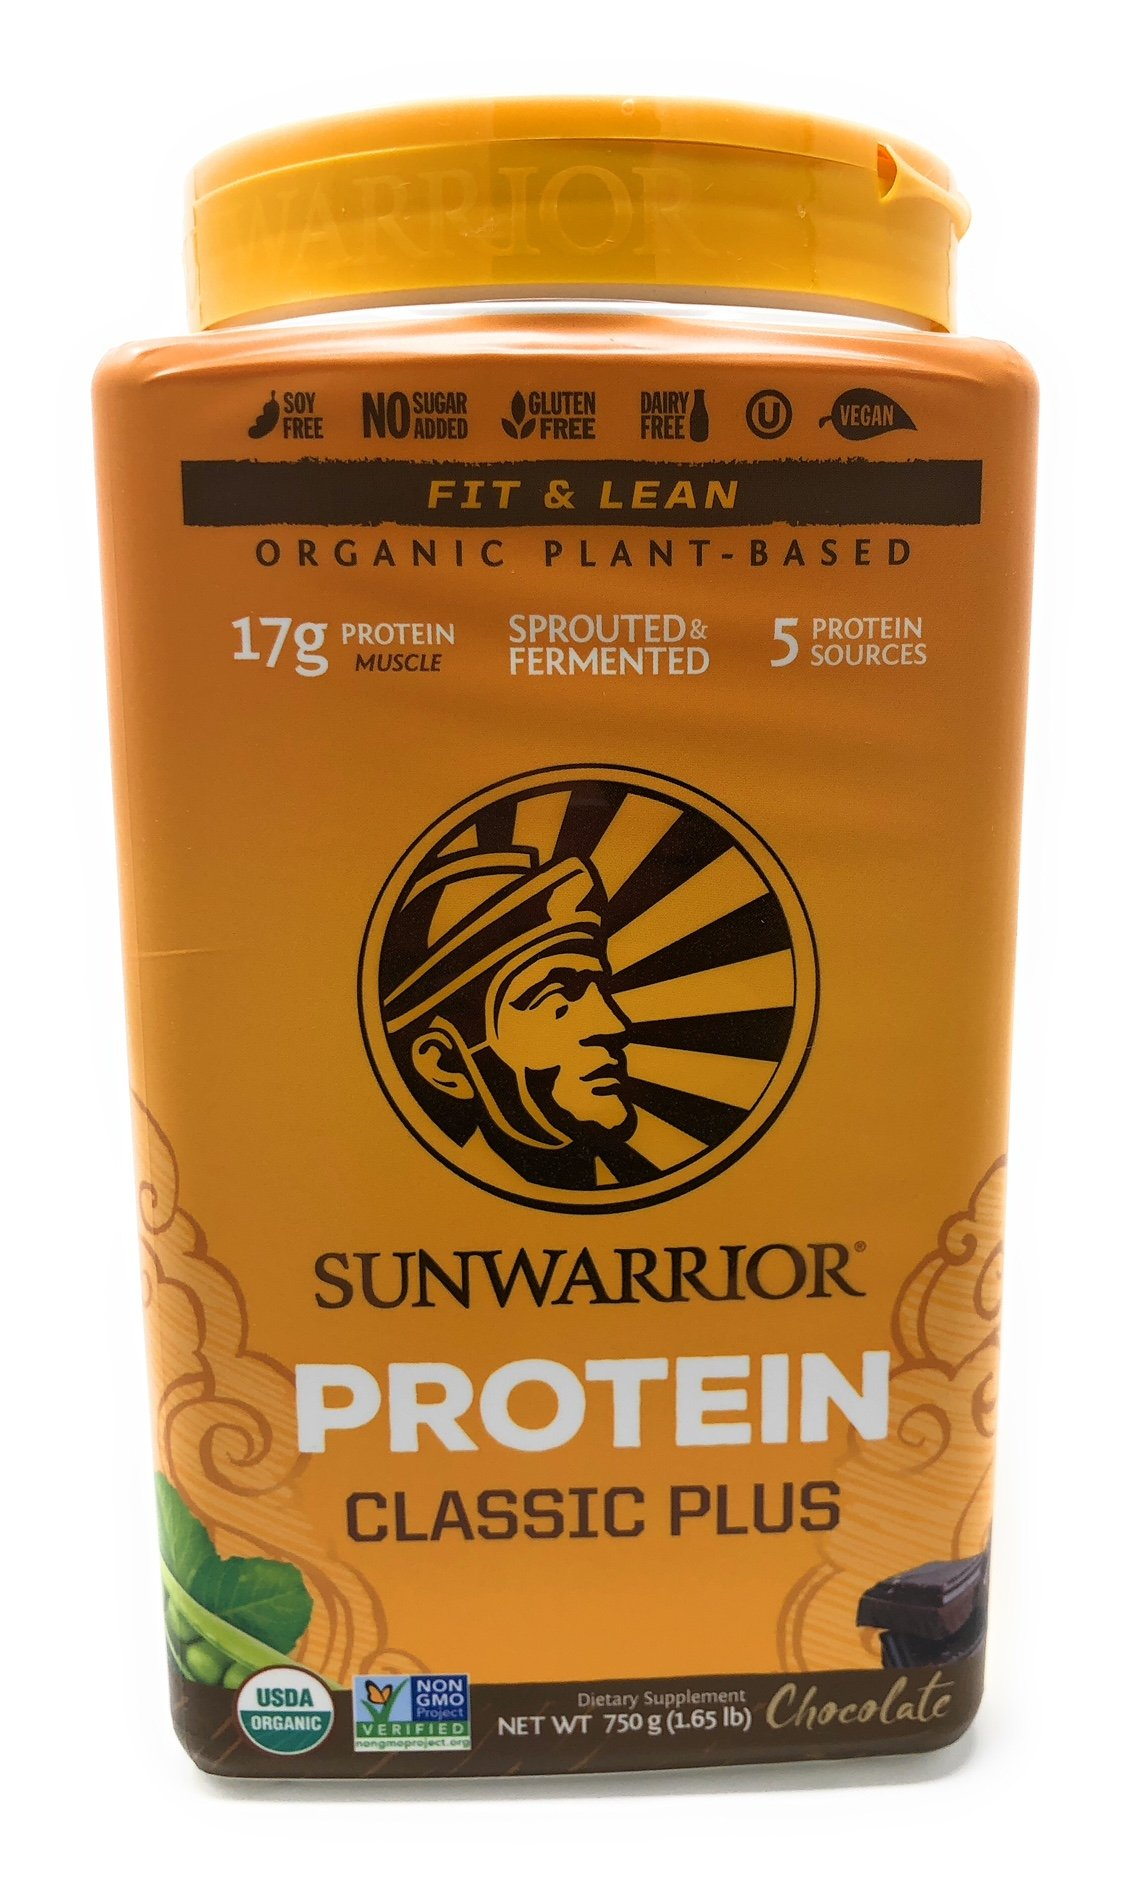 Sunwarrior - Classic Plus, Vegan Protein Powder with Peas & Brown Rice, Raw Organic Plant Based Protein (30, Chocolate). by Sunwarrior